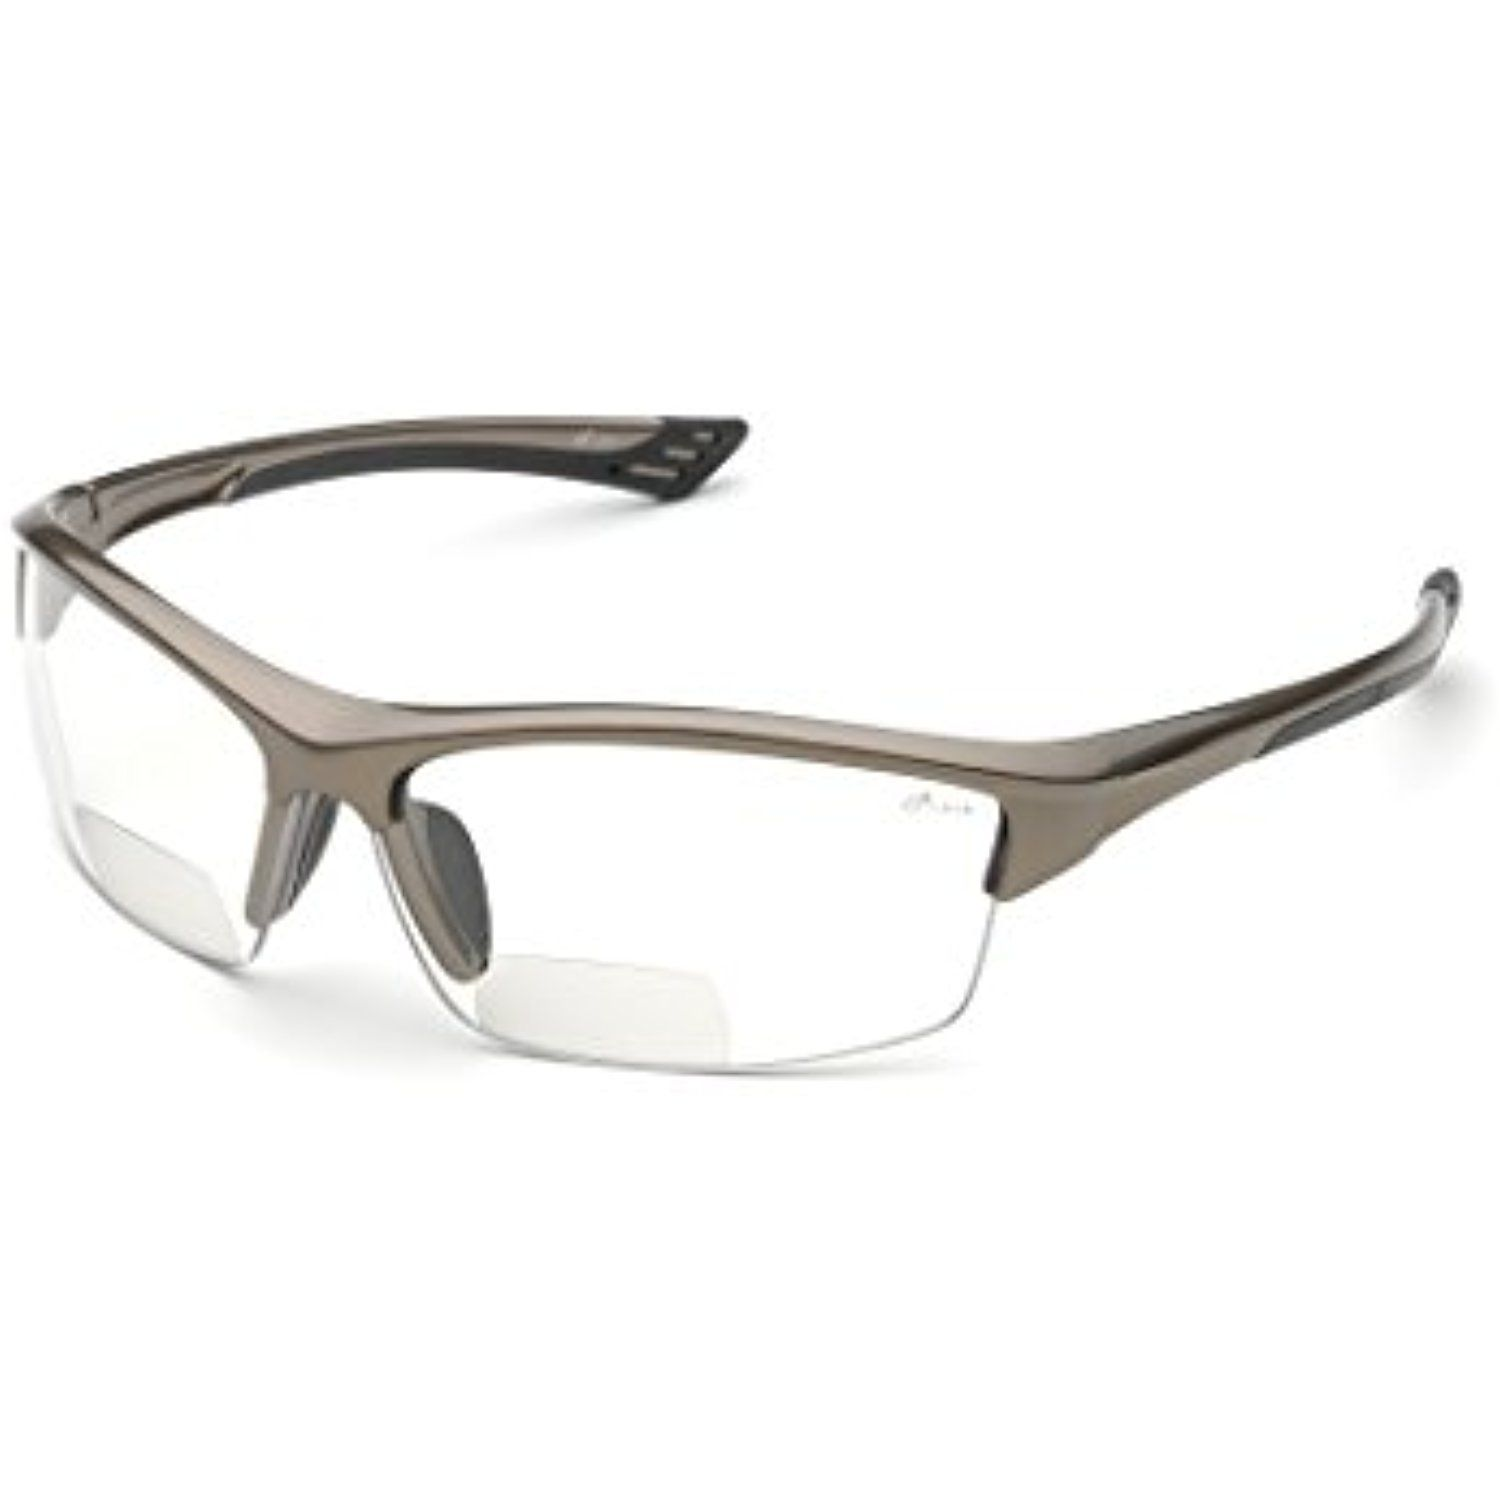 Elvex welrx350c20 rx350c20 diopter safety glasses